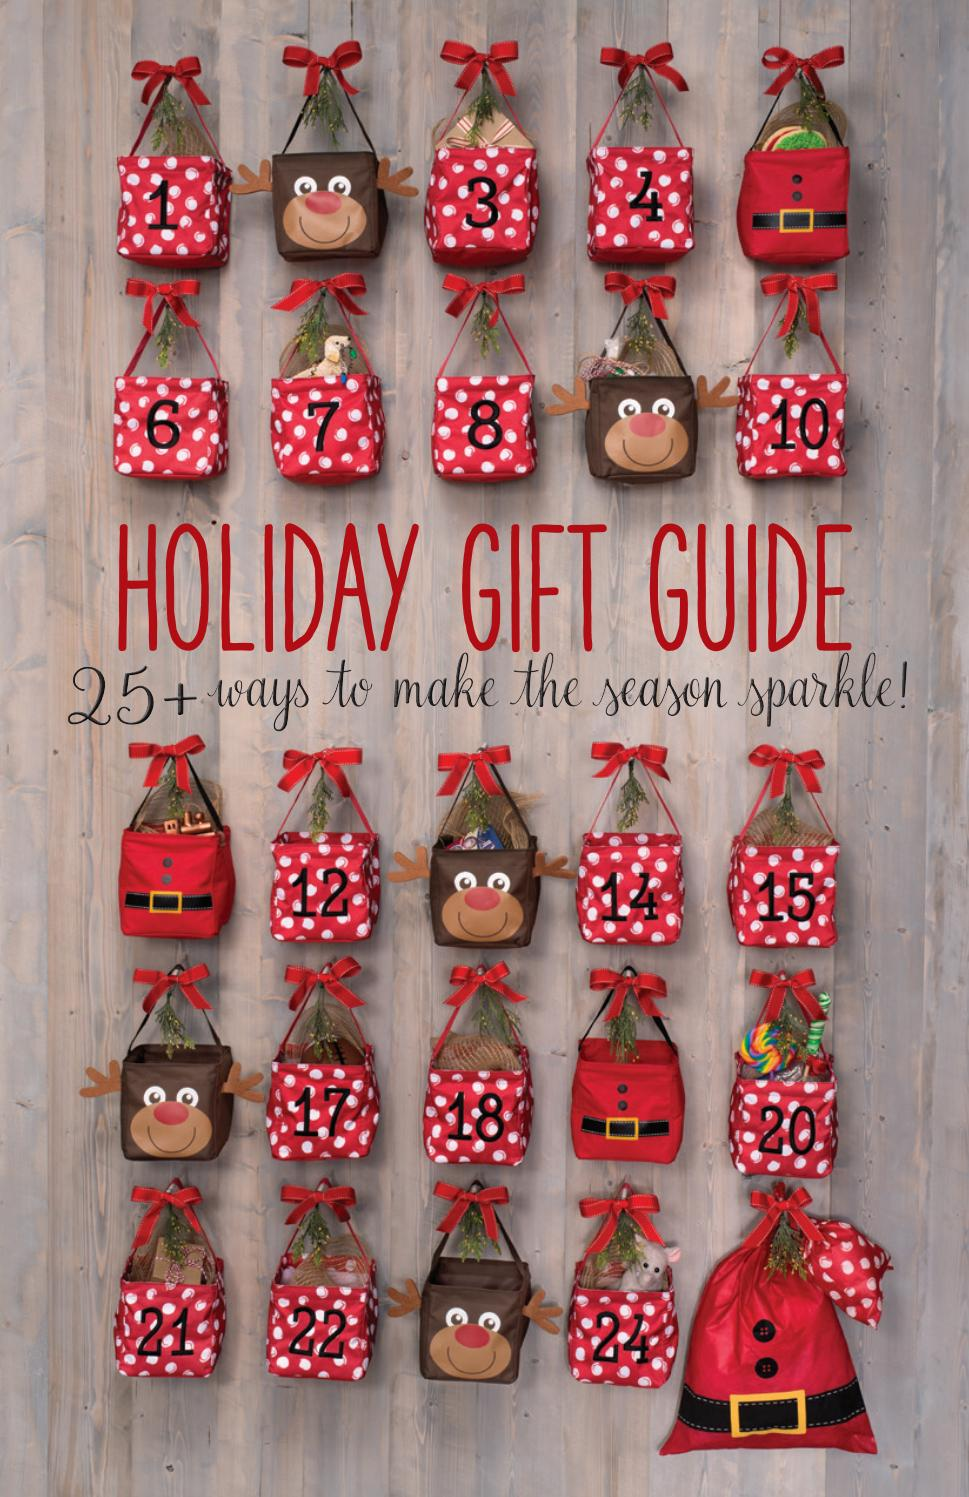 Christmas Gift Guide Catalogue.Thirty One Gifts Holiday Gift Guide By Kat Mccain Issuu